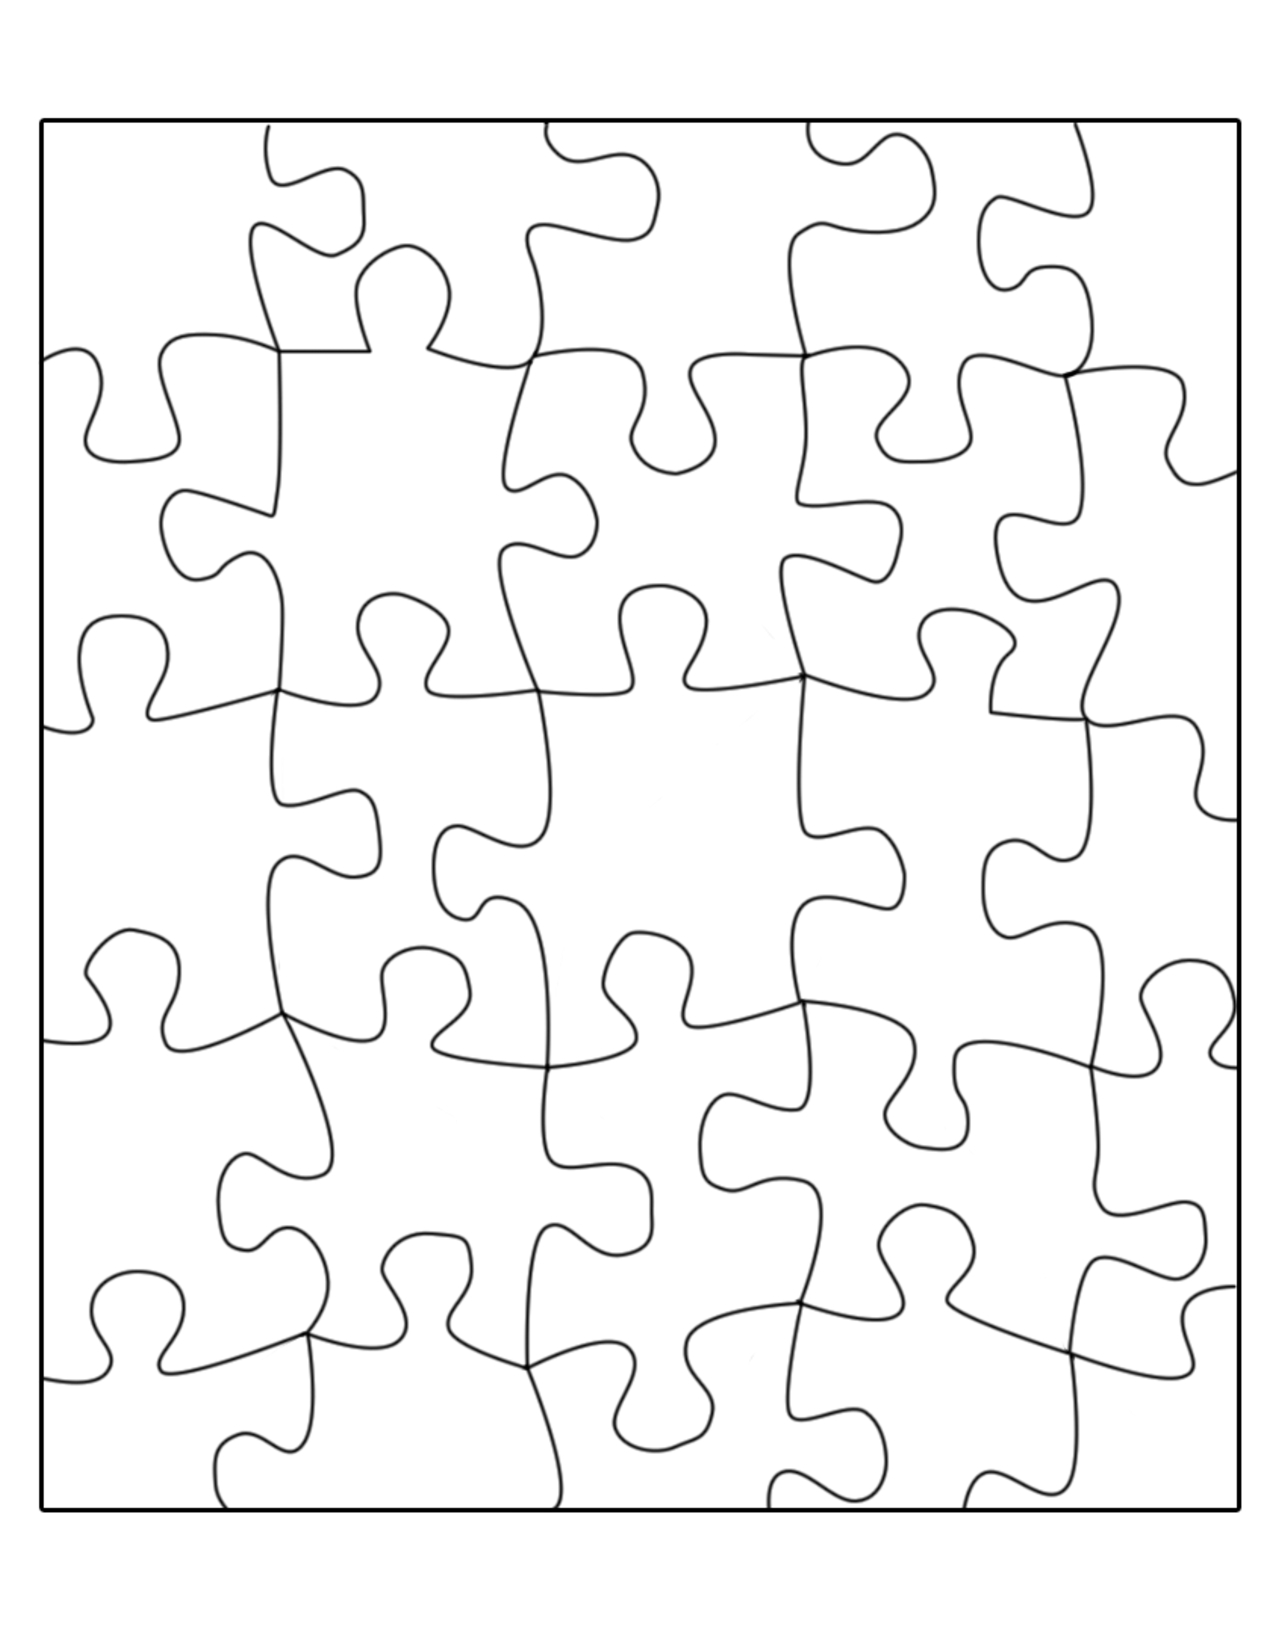 Free Puzzle Template, Download Free Clip Art, Free Clip Art On - Free Printable Heart Puzzle Template